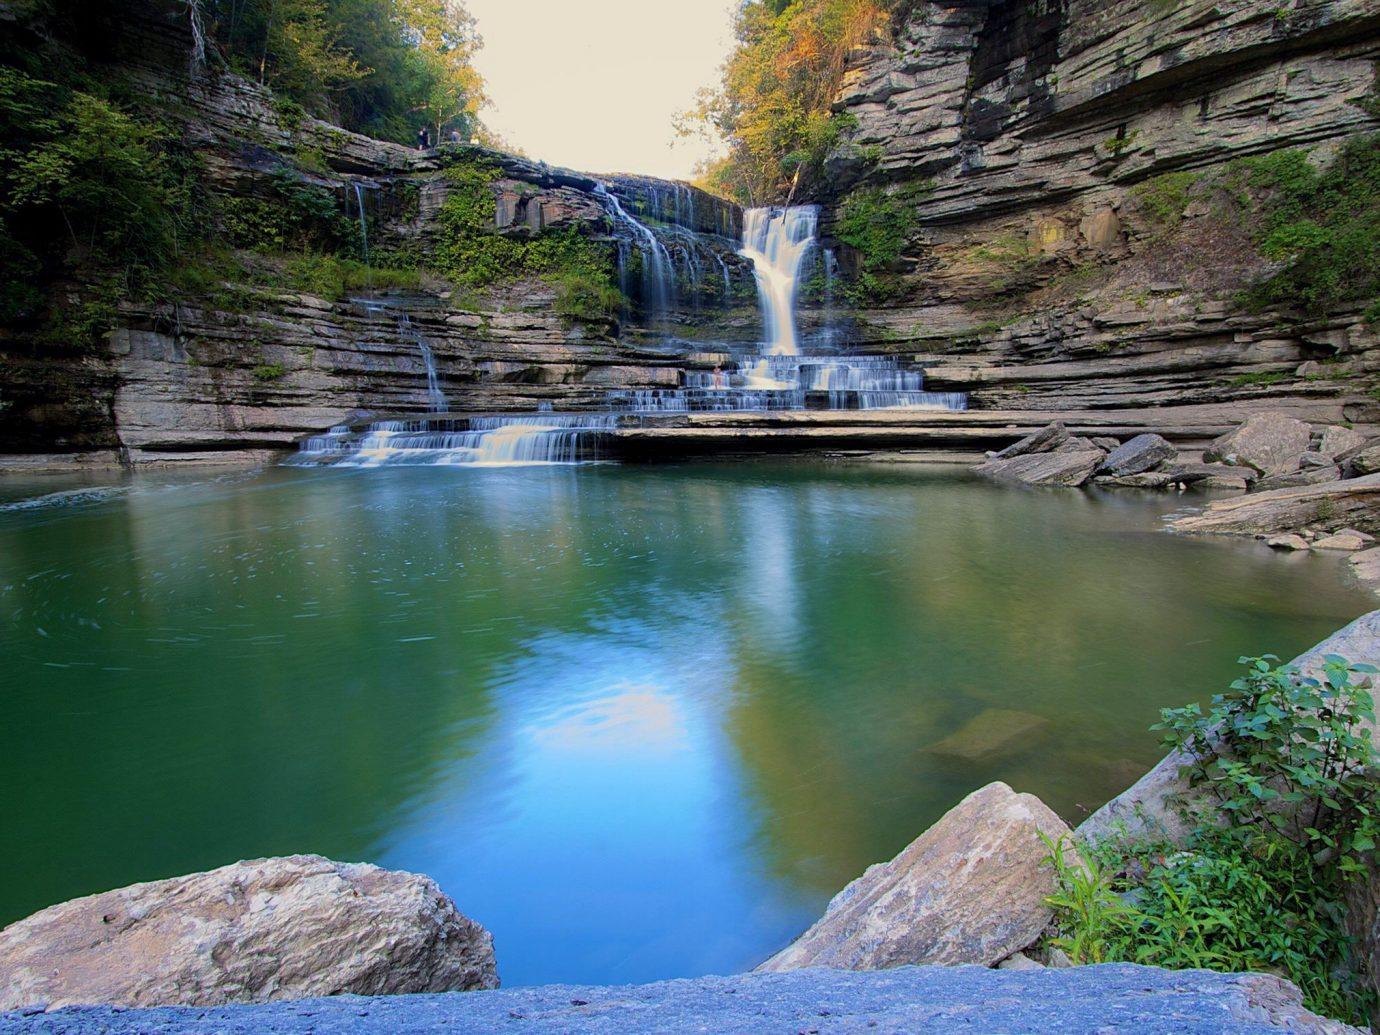 Outdoors + Adventure outdoor rock Nature tree Waterfall water body of water wilderness water feature River reflection Lake stream park valley surrounded pond stone hillside